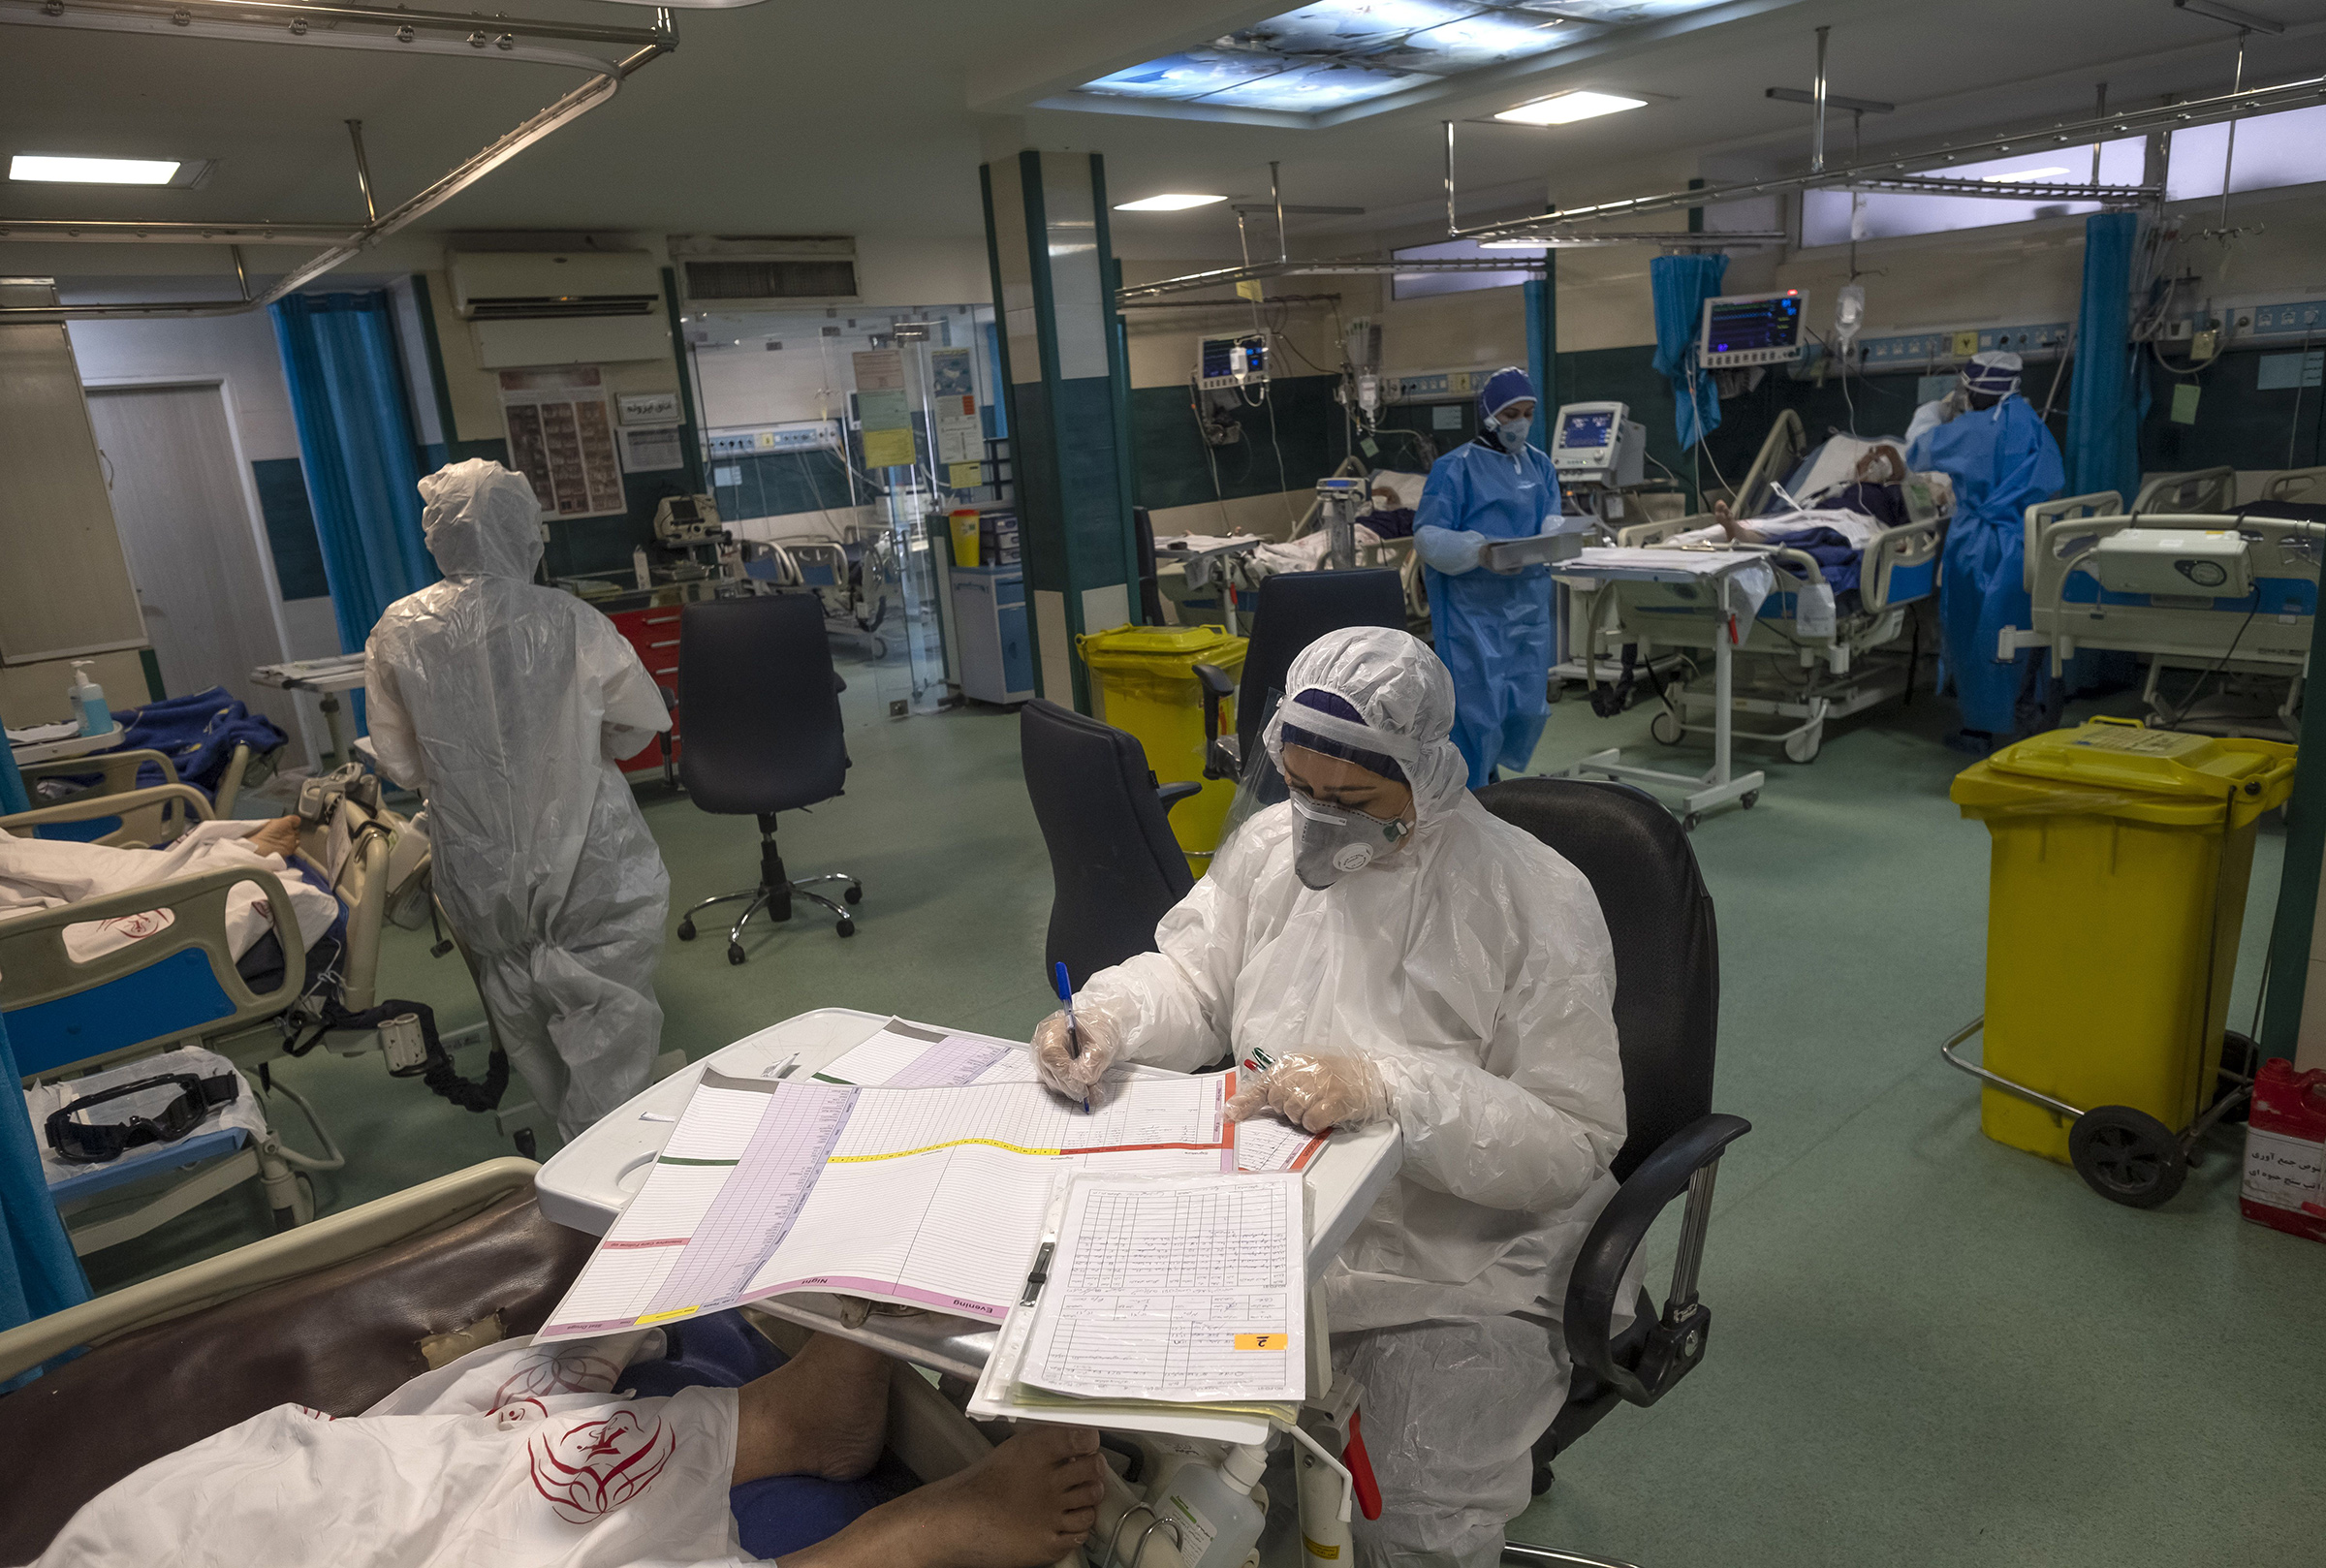 An Iranian medical personnel wearing protective gear works at a quarantine section of the Rassolakram hospital in western Tehran following a new coronavirus outbreak in Iran on March 11.